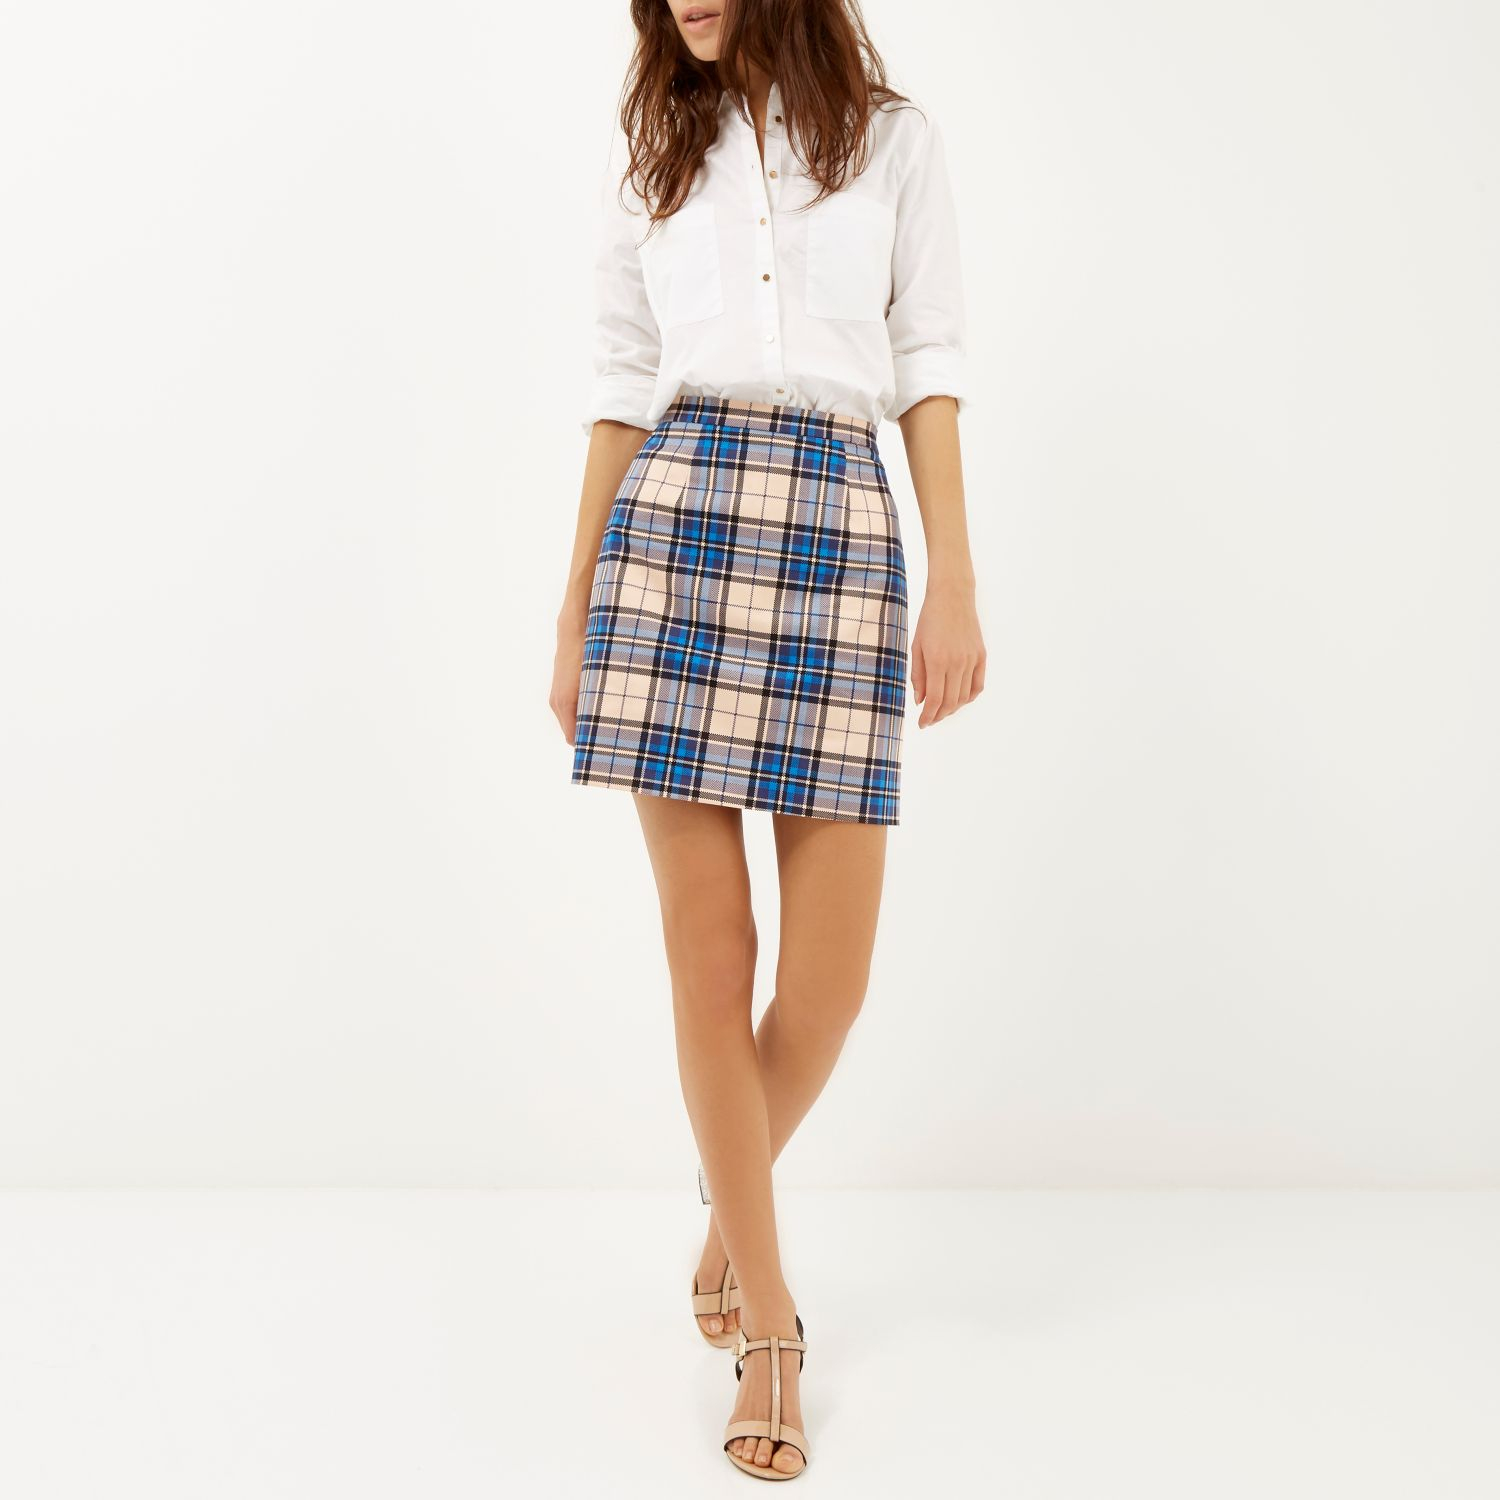 River island Blue Check A-line Skirt in Blue | Lyst